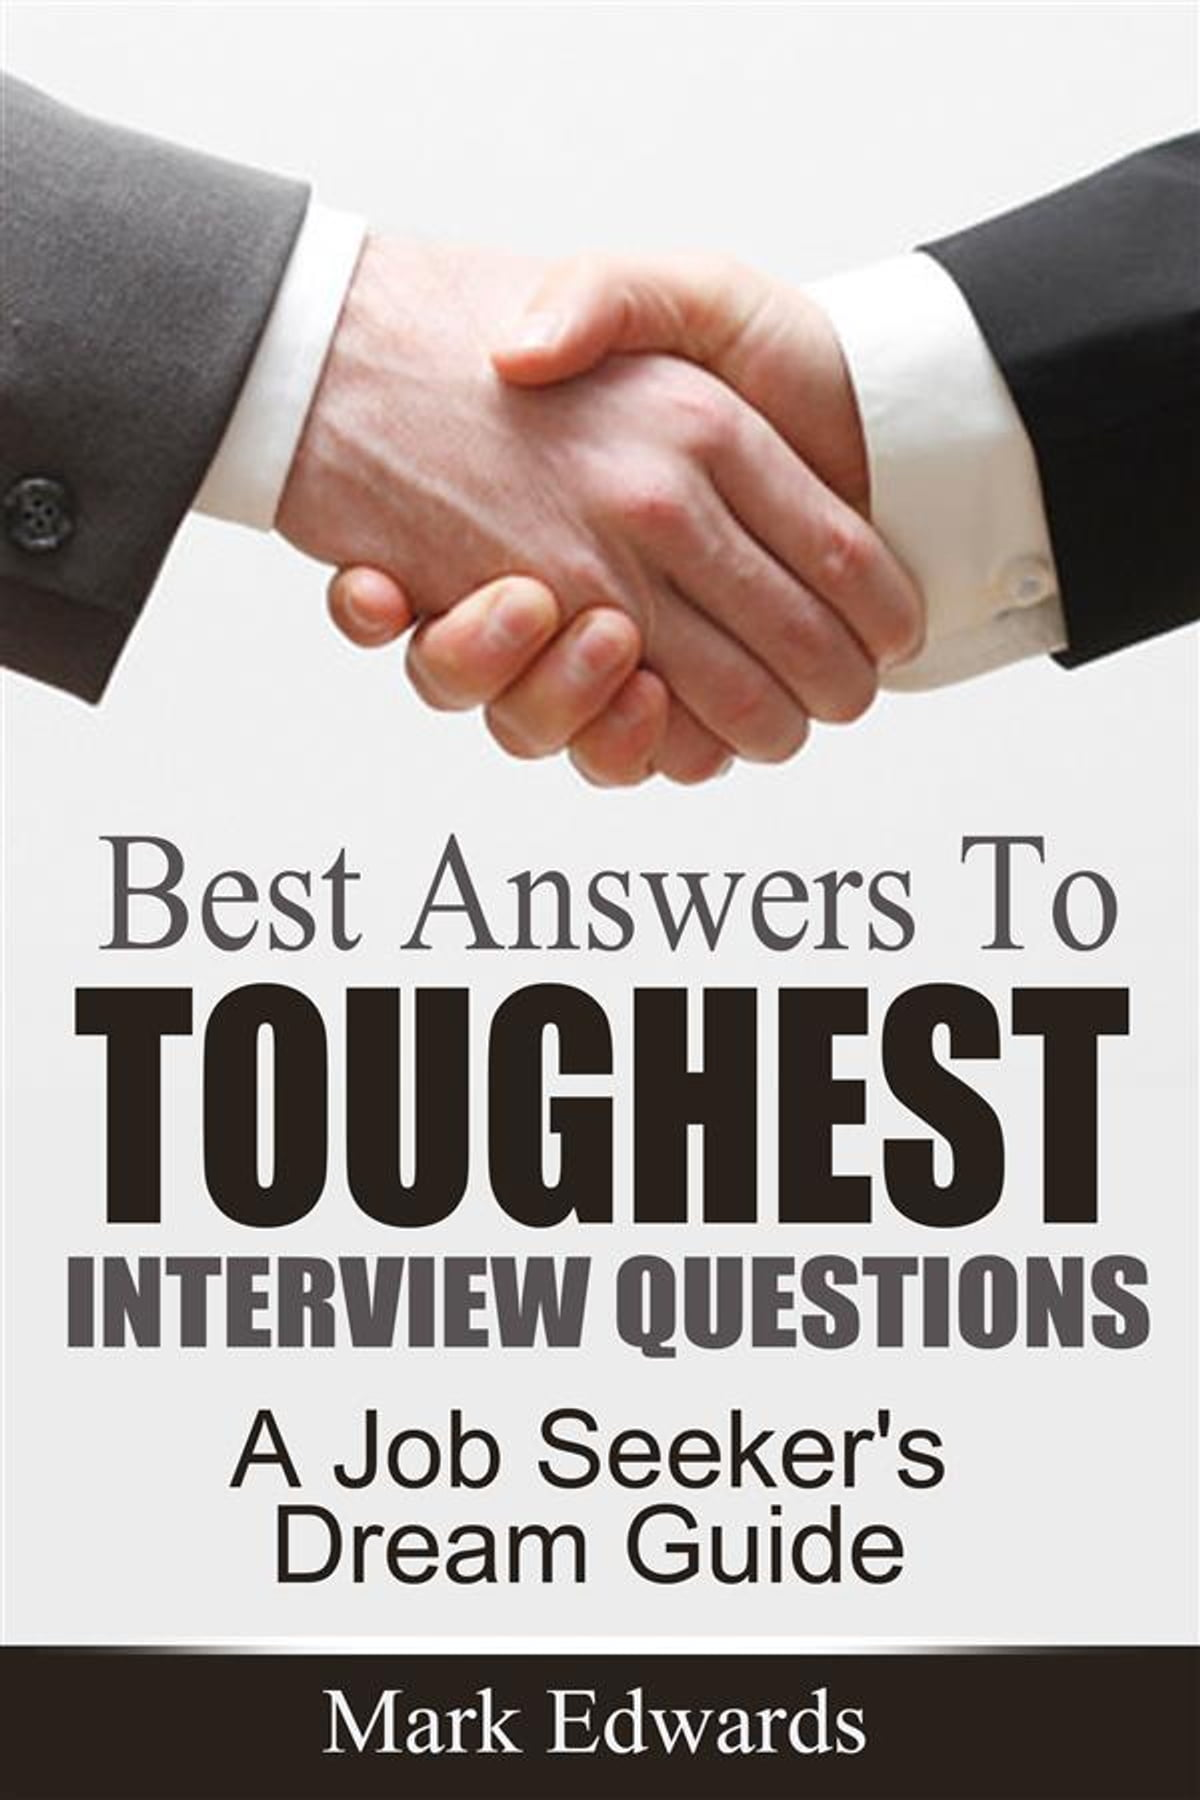 Best Answers To Toughest Interview Questions : A Job Seeker's Dream Guide  ebook by Mark Edwards - Rakuten Kobo